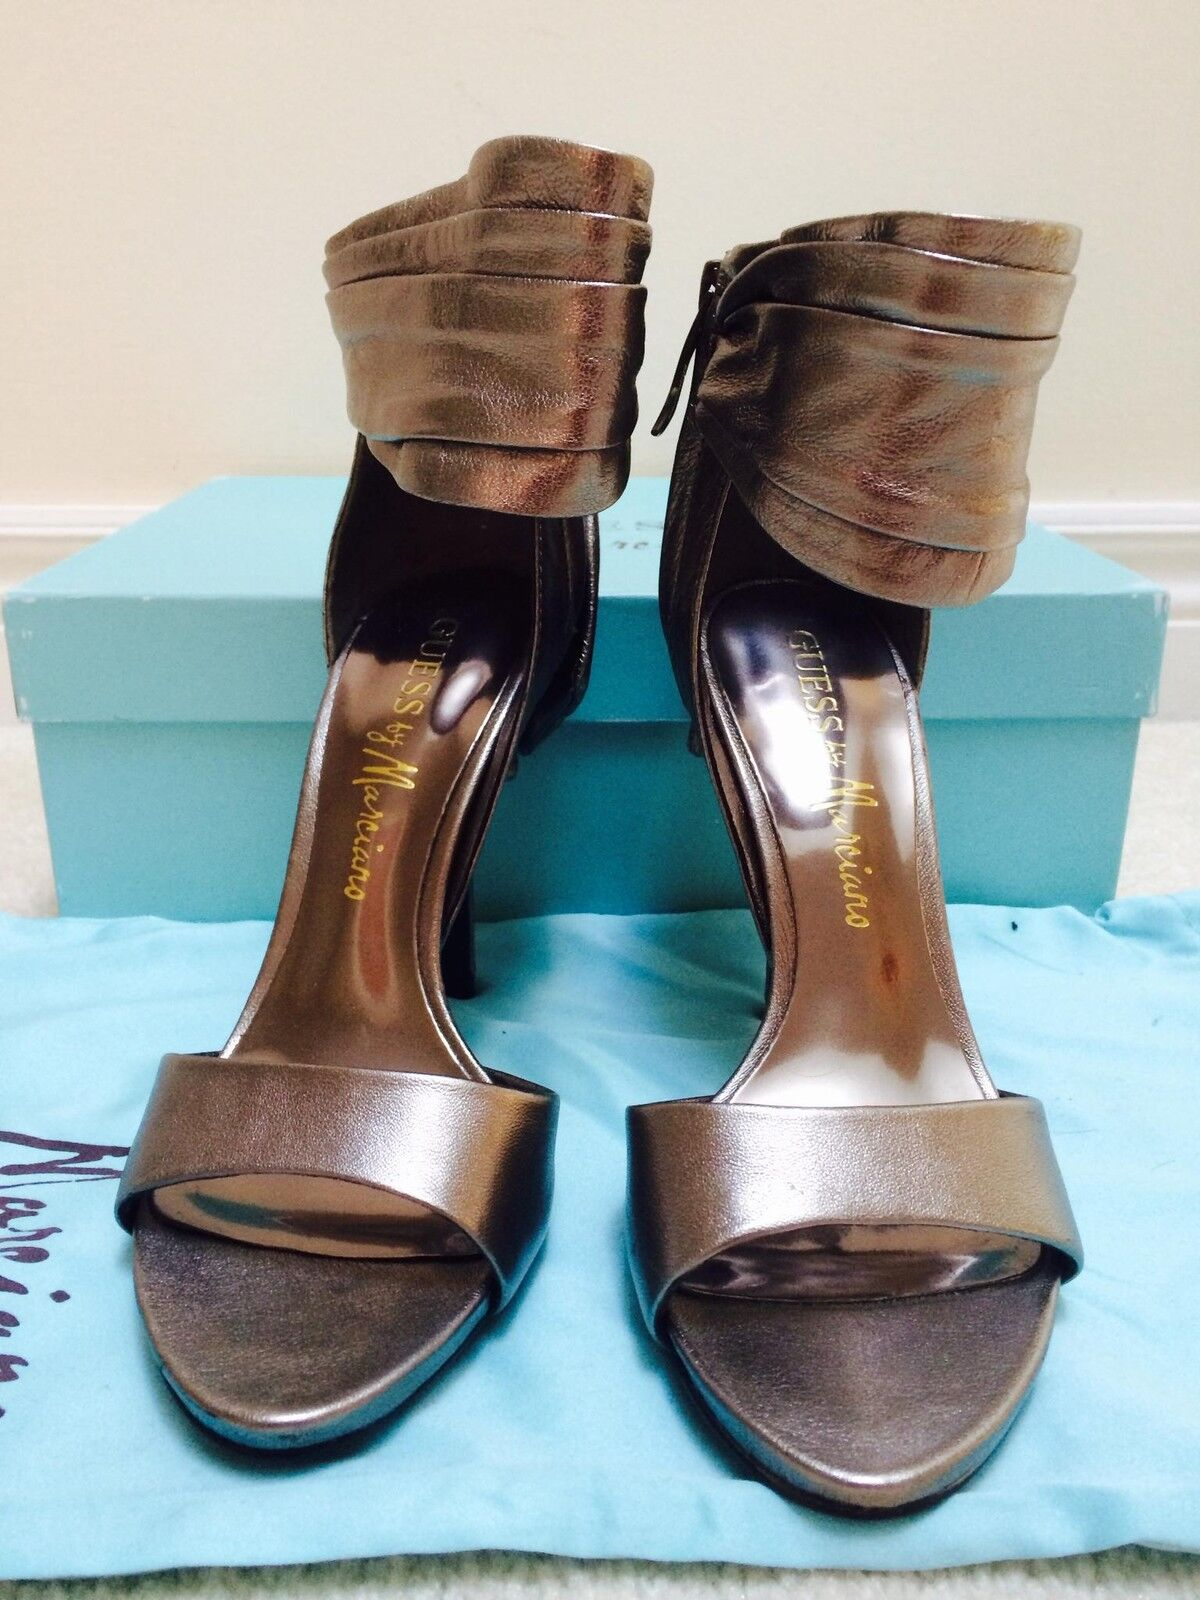 NIB MARCIANO guess ROXANNE BOW LEATHER SHOES PEWTER SIZE SIZE PEWTER 7 7.5 HOT 65b922